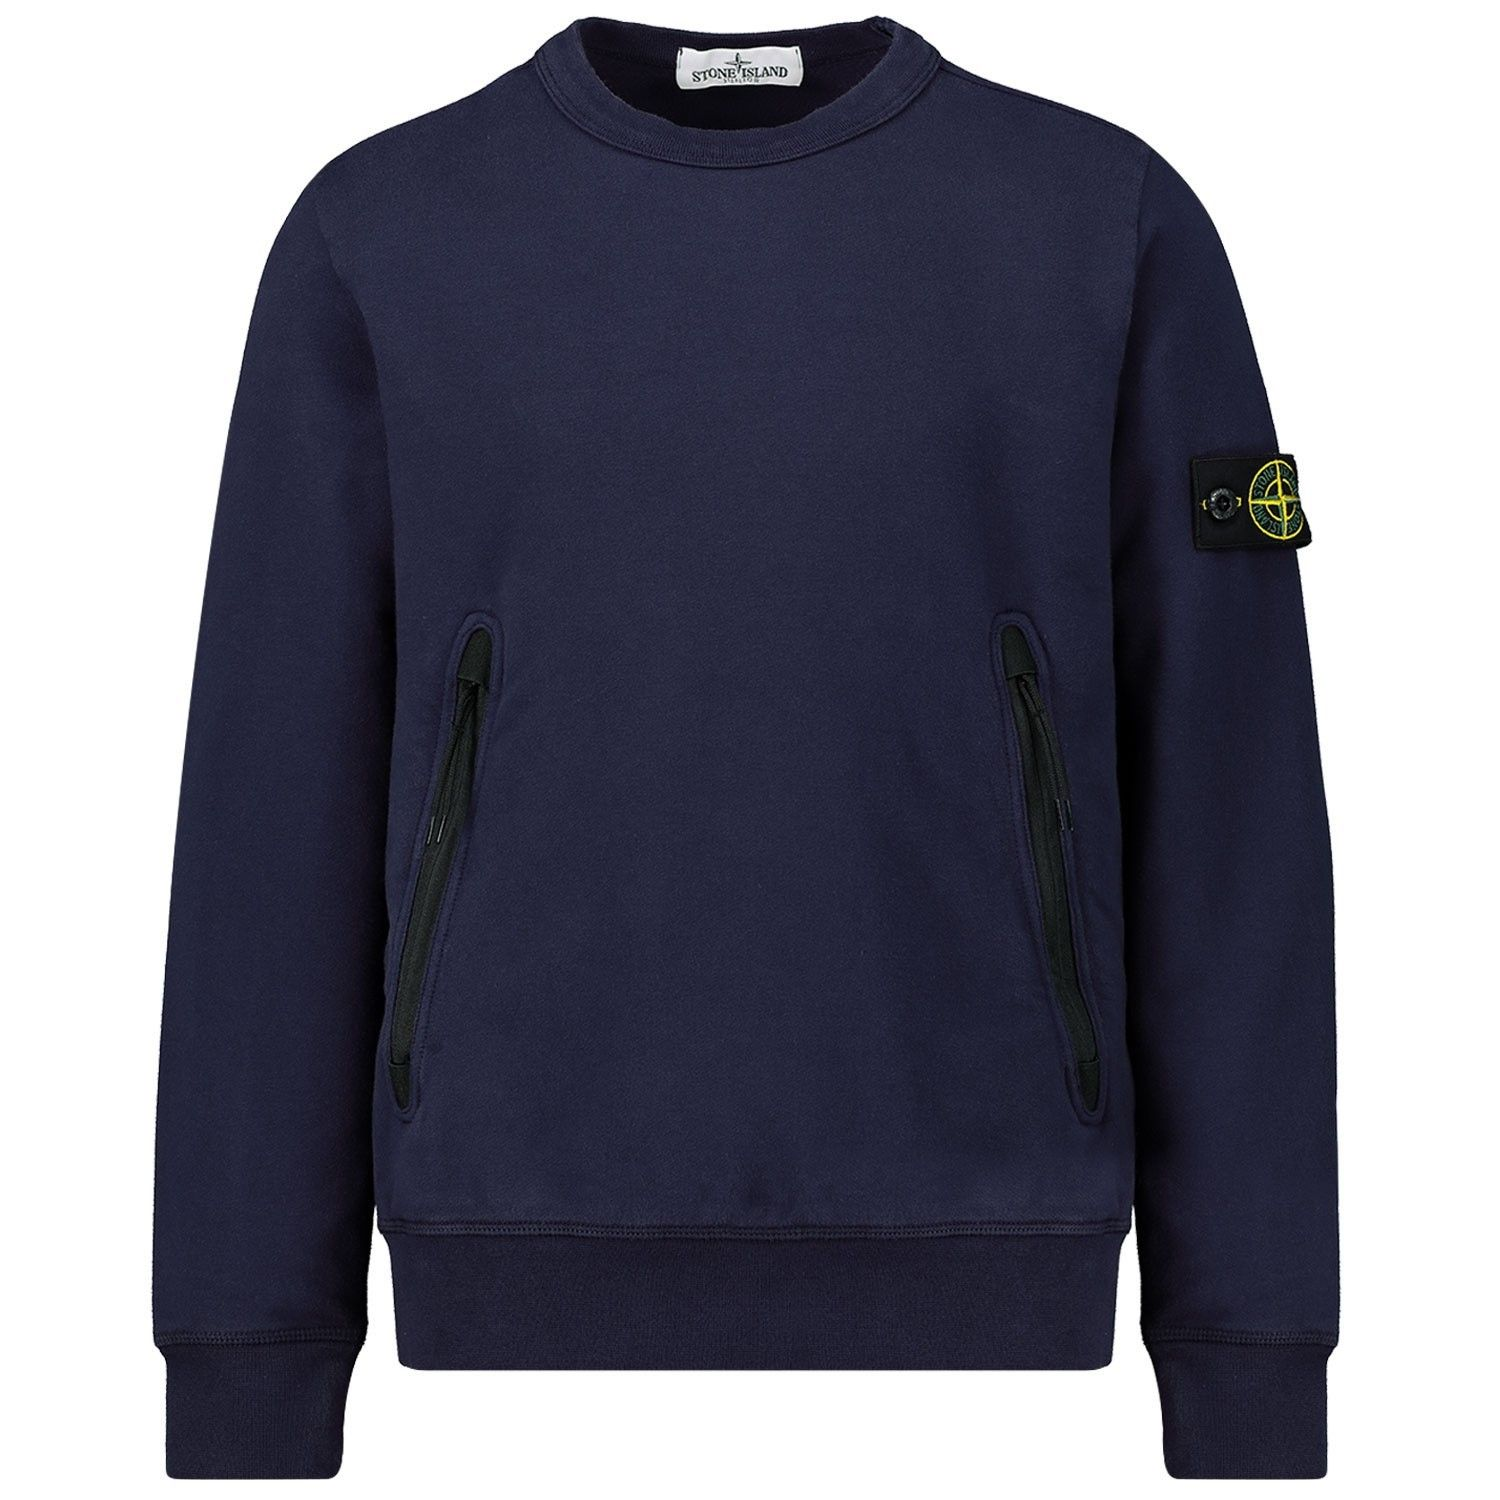 Picture of Stone Island MO731662542 kids sweater navy